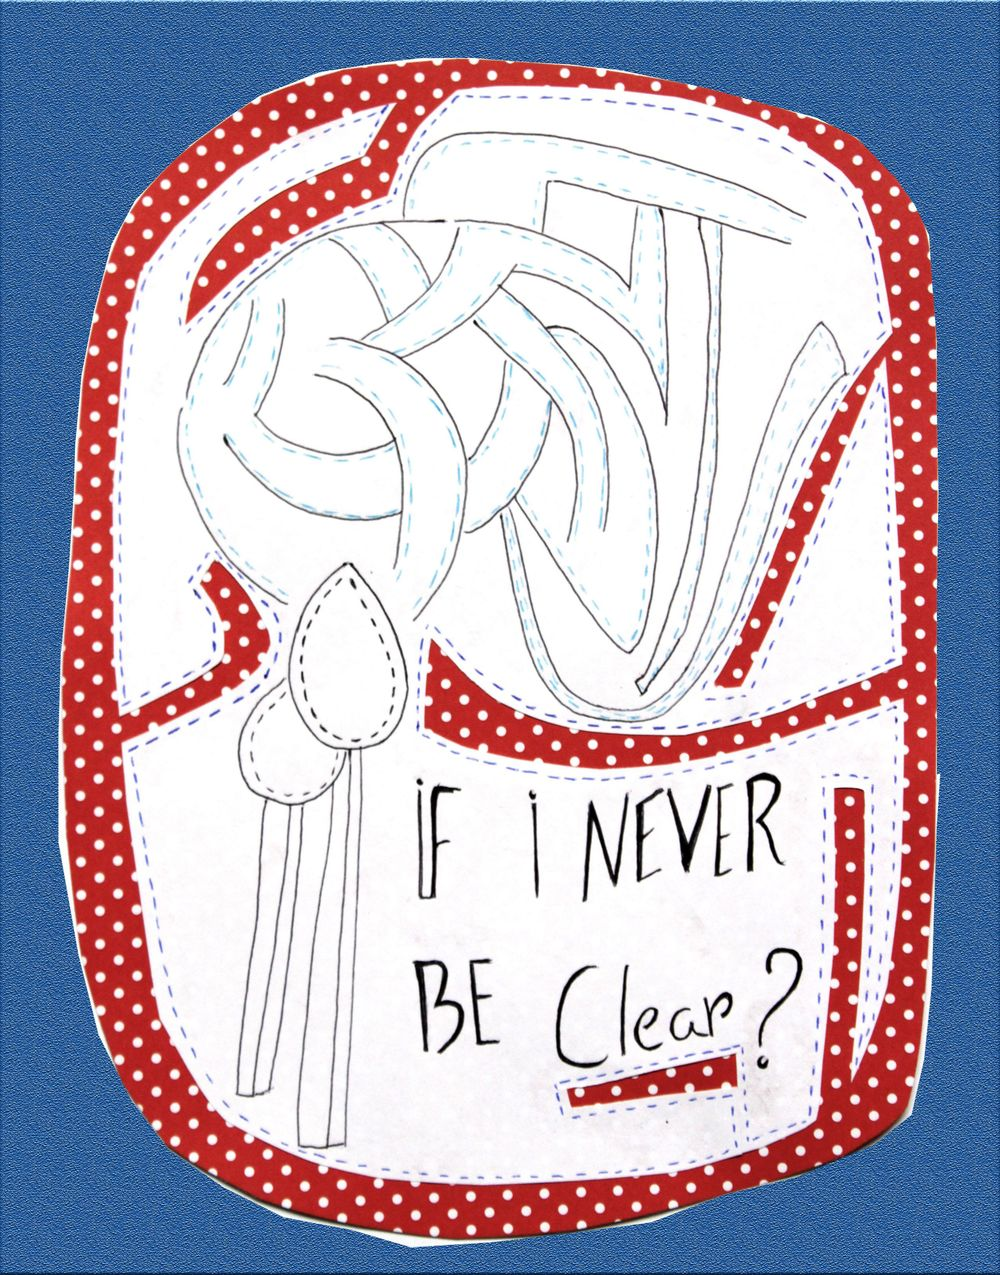 If I never be clear? - image 1 - student project